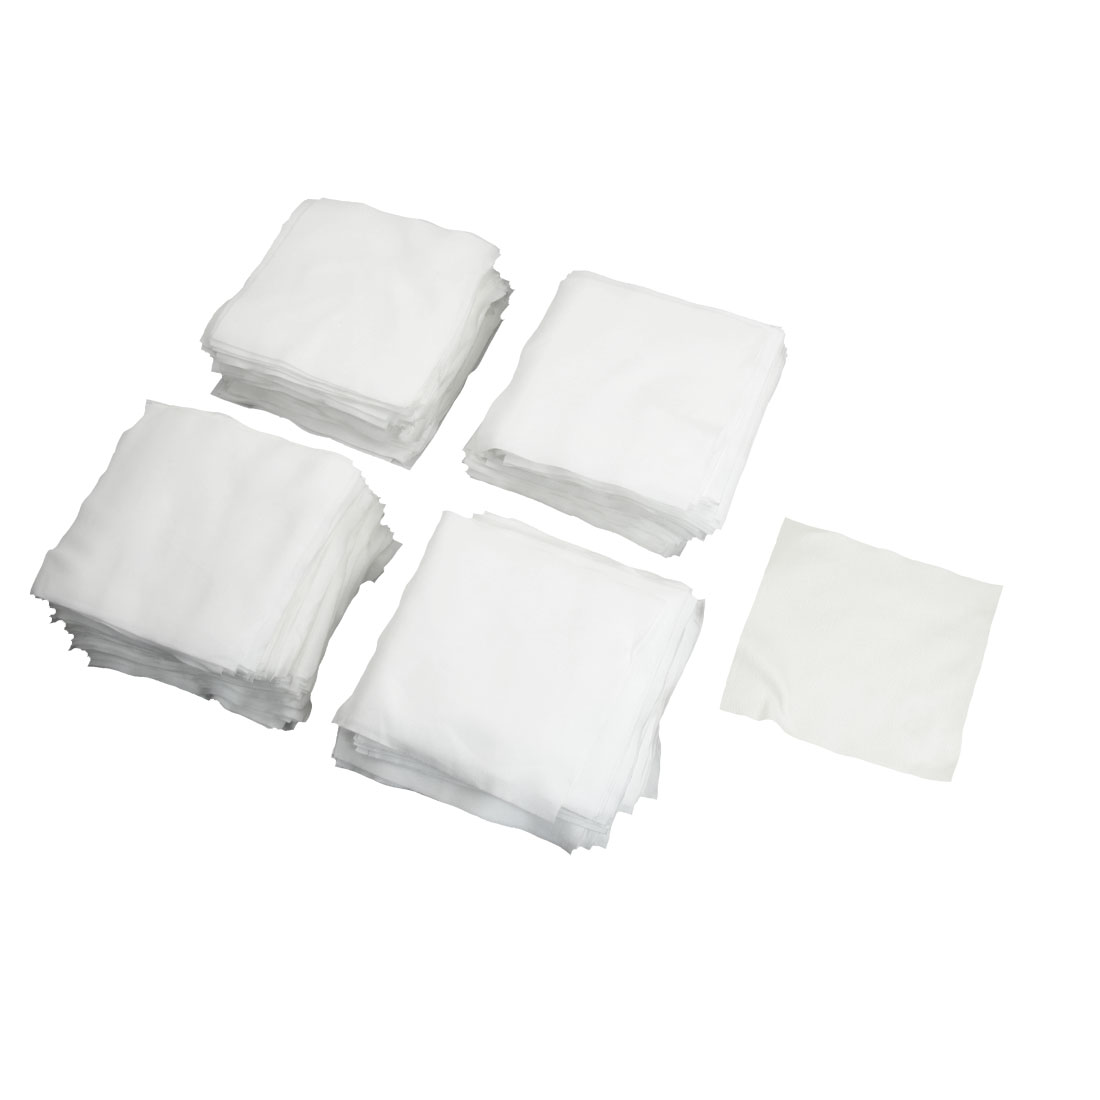 "400 Pcs 4"" x 4"" White Dustless Cleanroom Wiper Wiping Cloth"